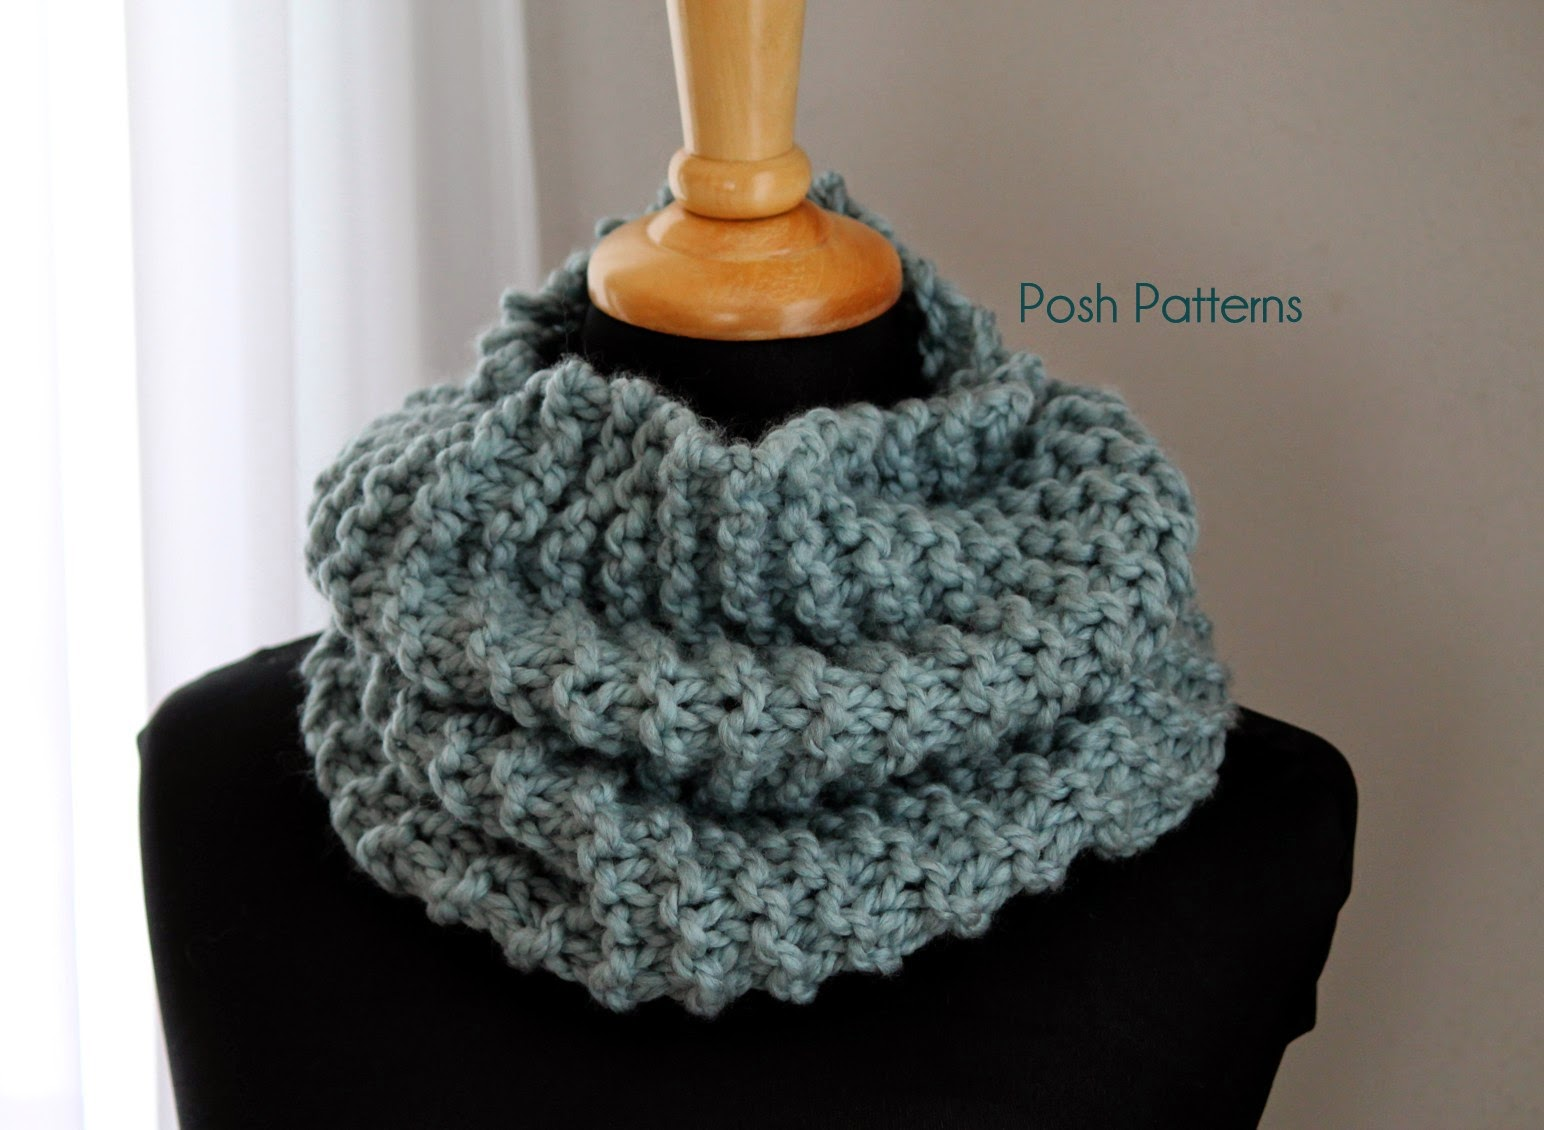 Posh Patterns Easy Crochet Patterns and Knitting Patterns ...